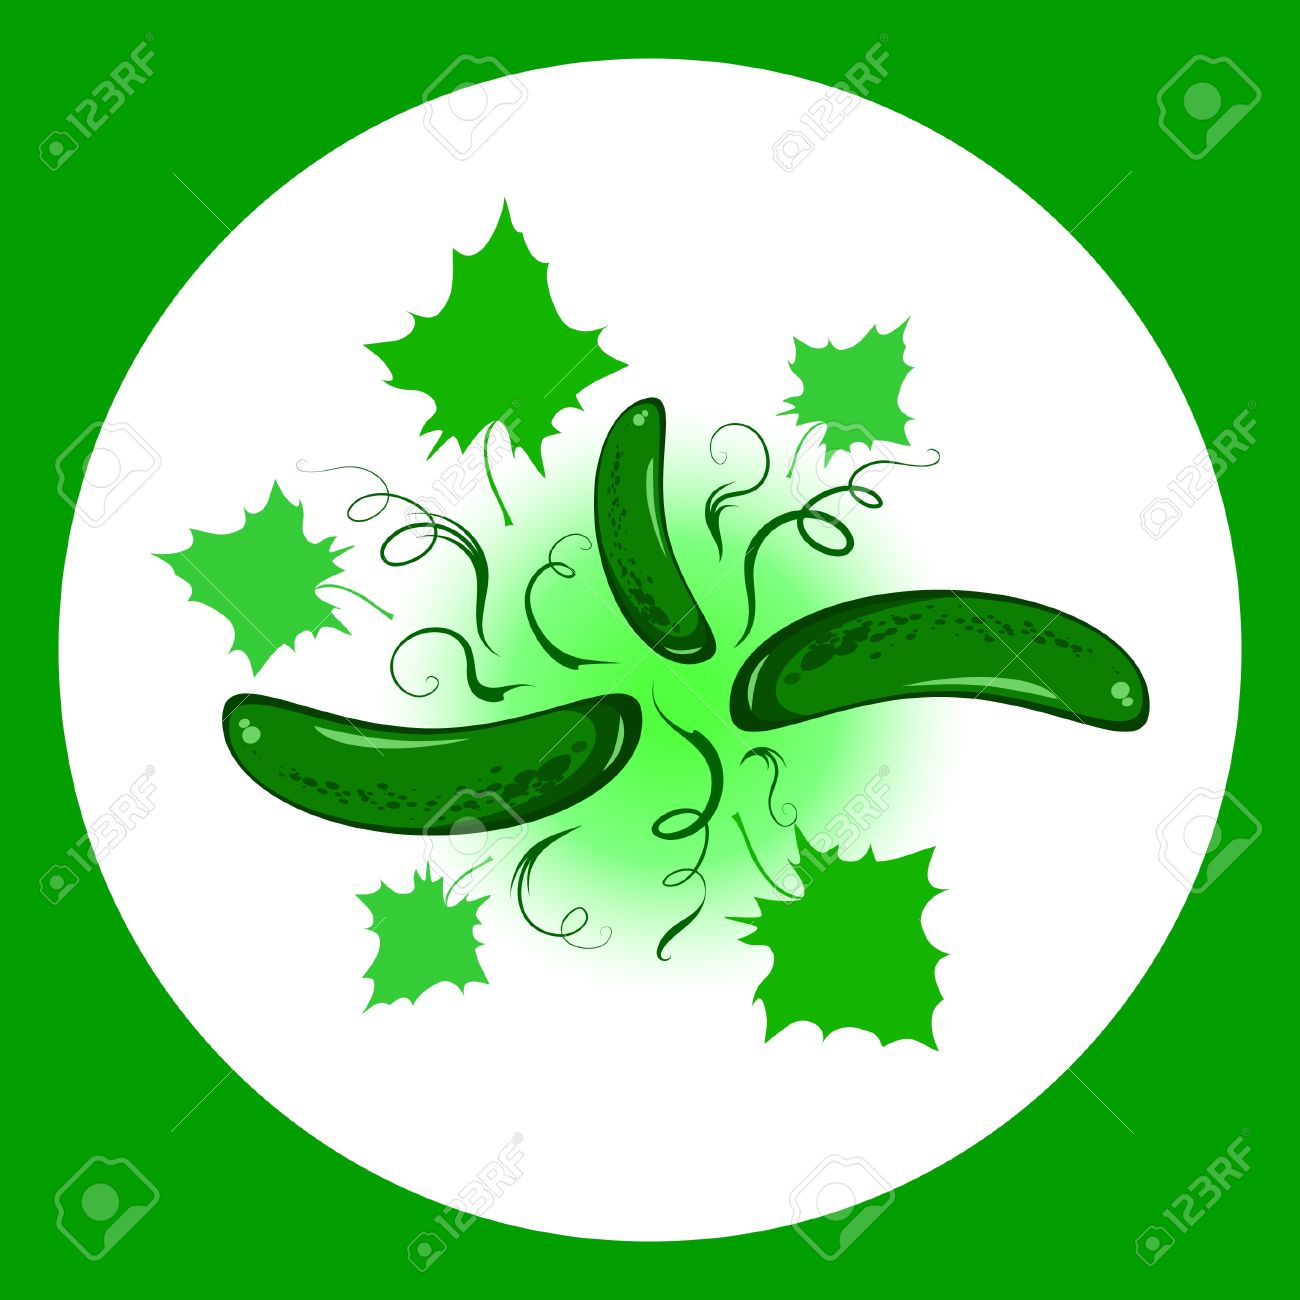 The Green Cucumbers, Sheets And Climbing Tendrils. Vector.